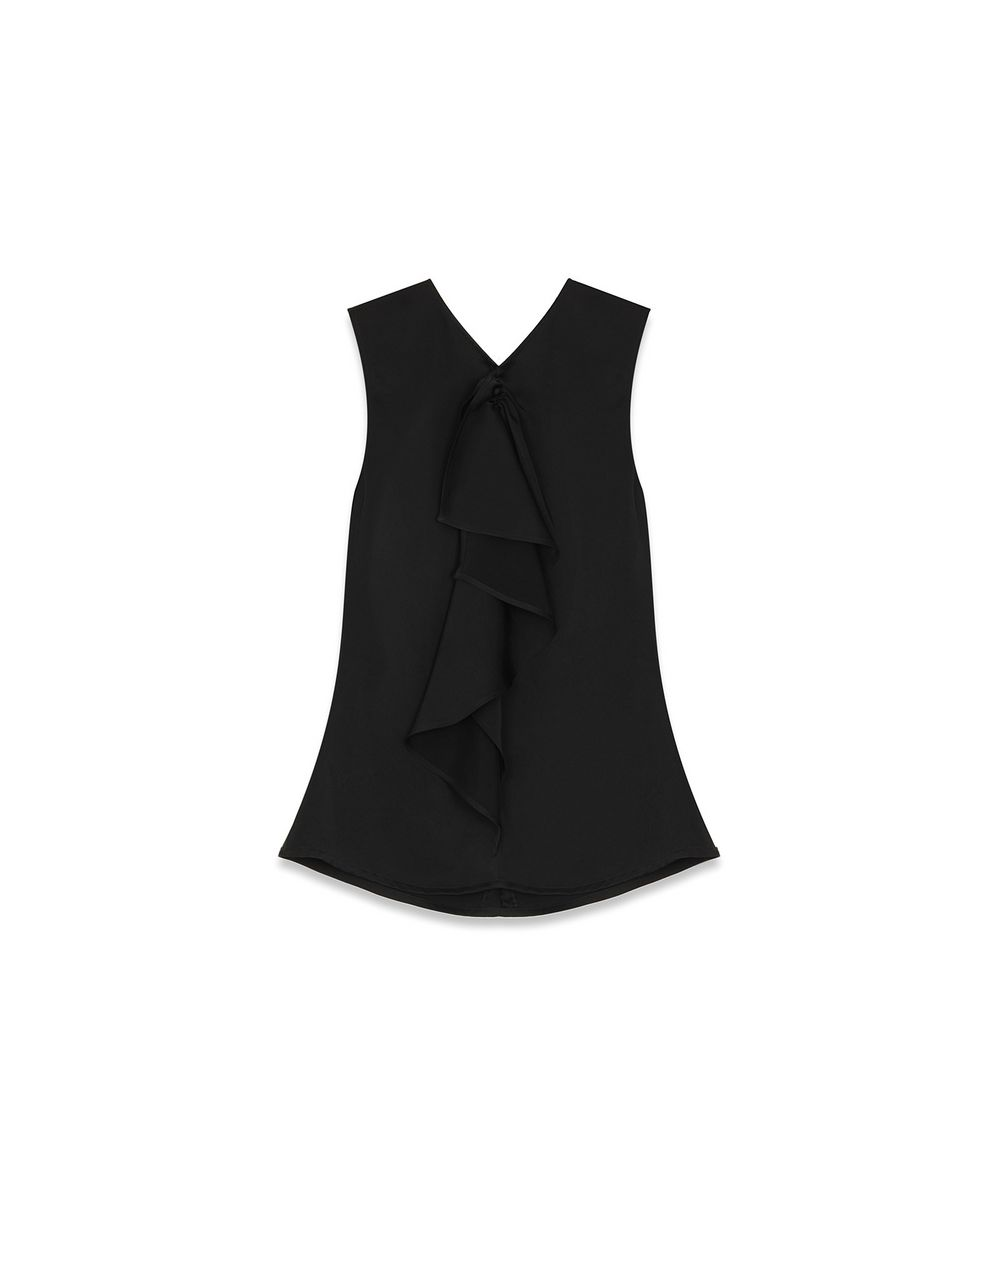 SLEEVELESS BLOUSE WITH RUFFLE INSET - Lanvin